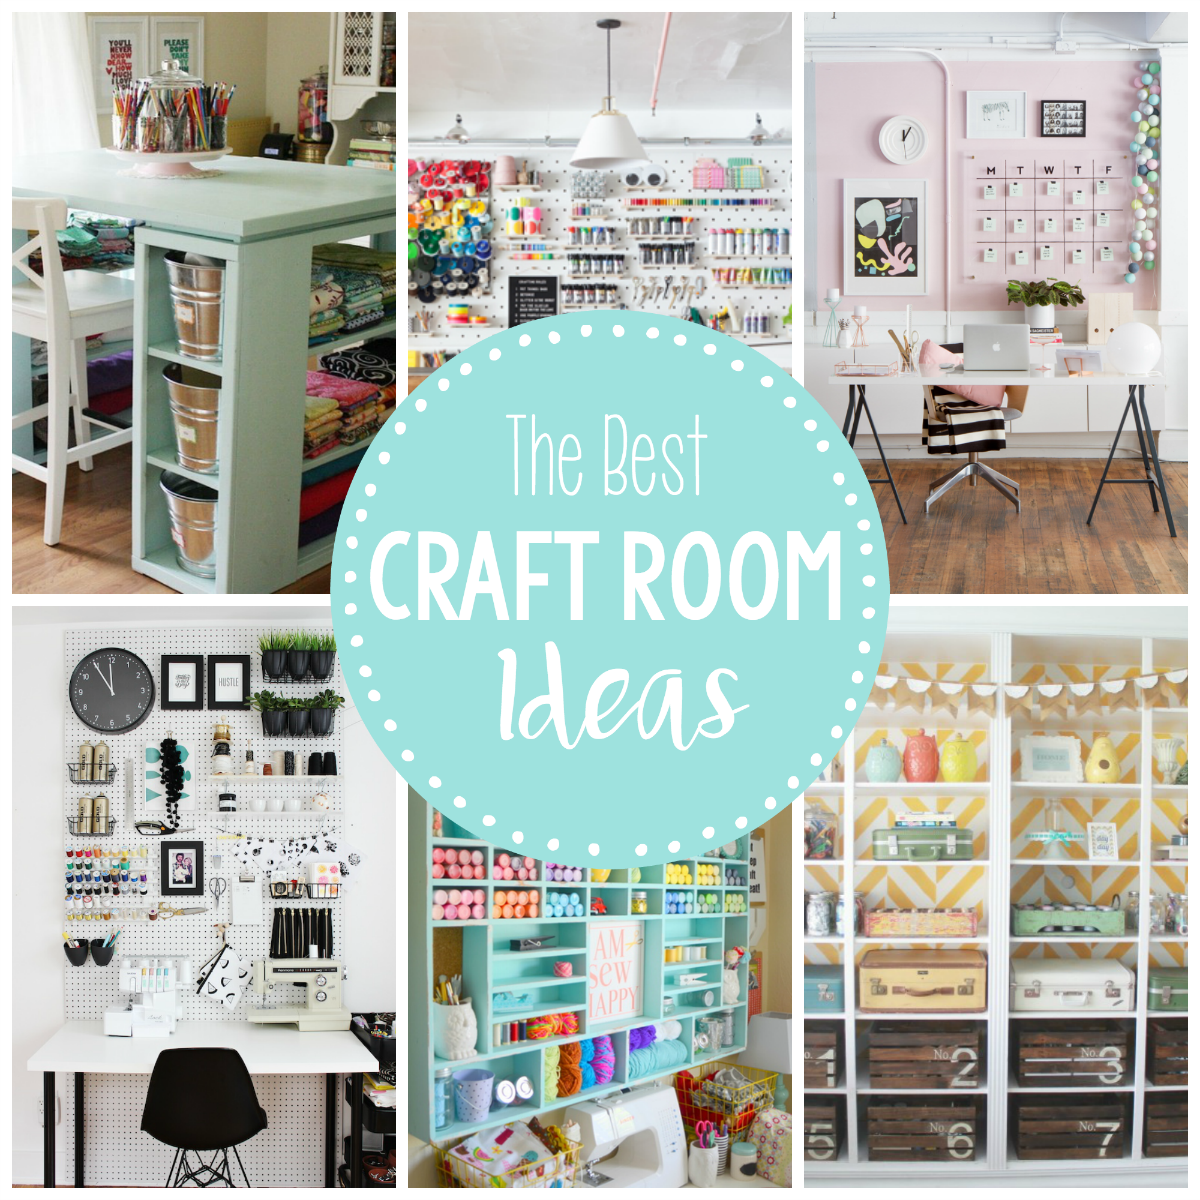 35 Home Storage Ideas Room By Room: 15 Fun & Amazing Craft Room Ideas